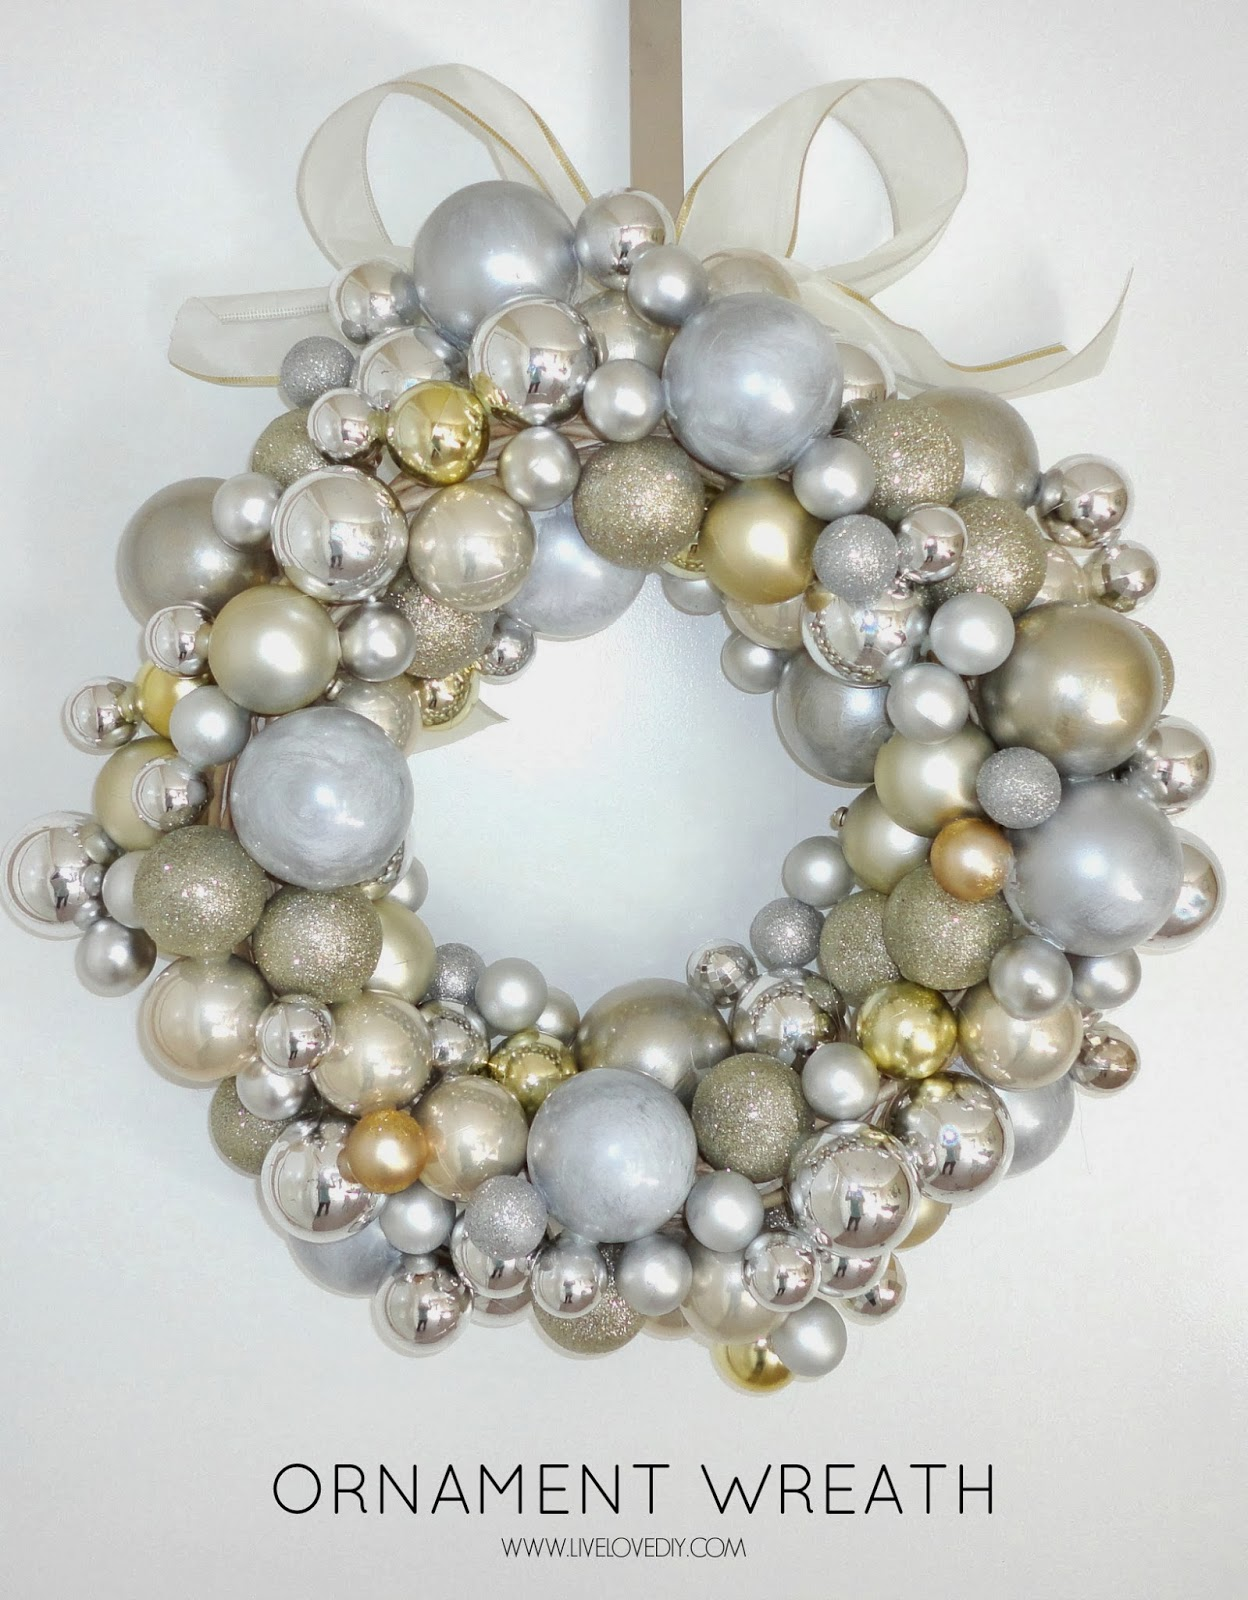 How to make your own Christmas ornament wreath for less than $10! LOVE